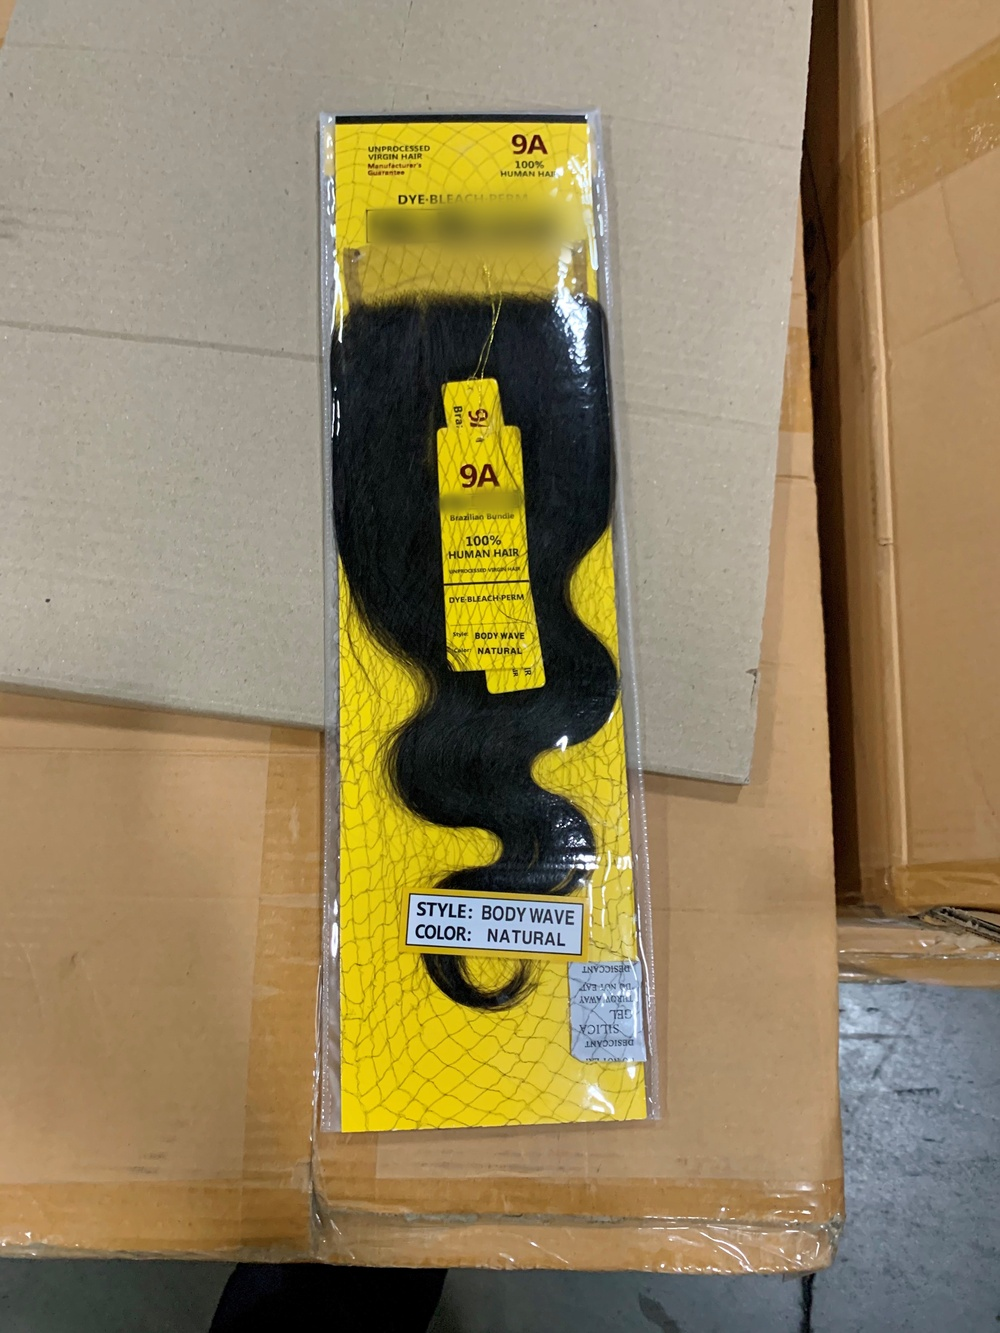 Port of New York/Newark inspect a shipment of hair products from China